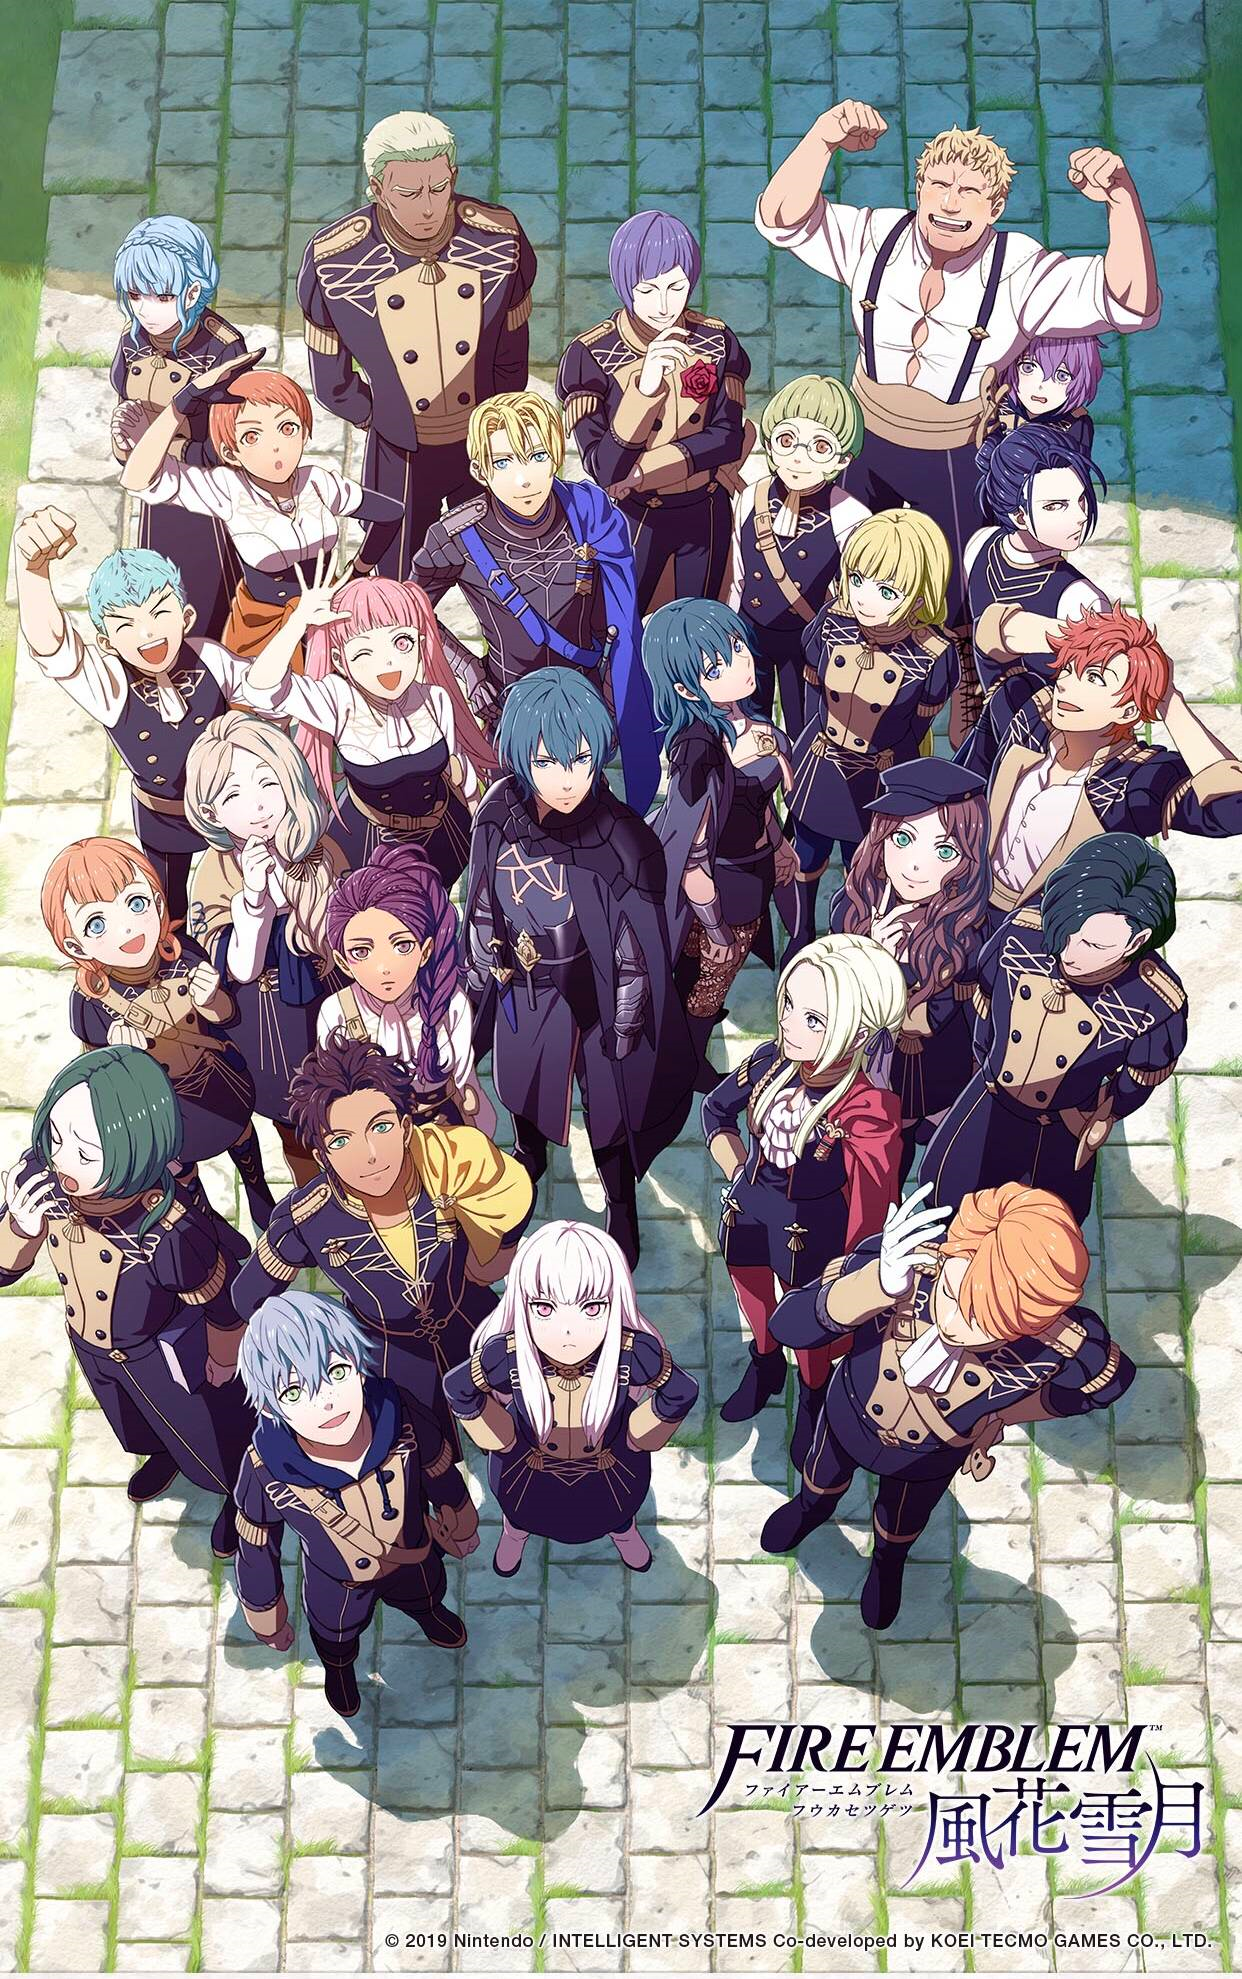 A promotional image of all the students and Byleth from Fire Emblem: Three Houses.